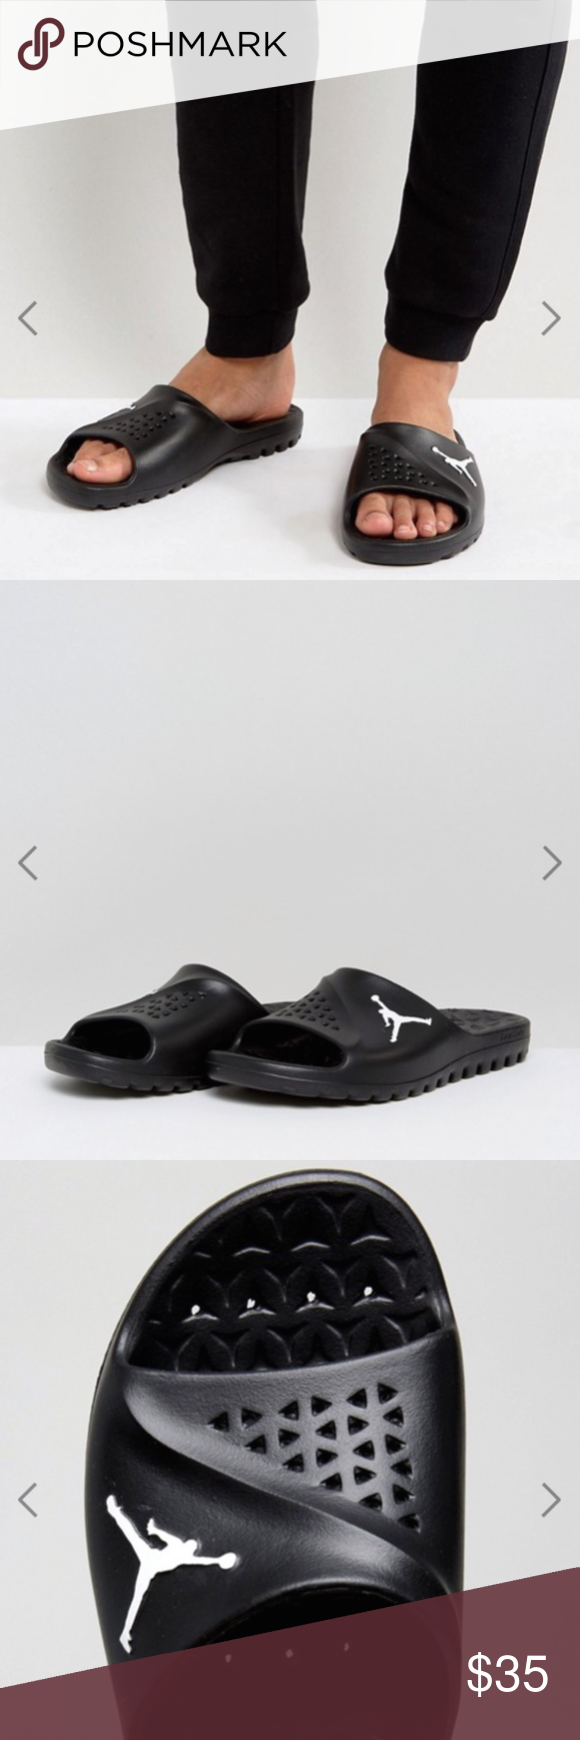 51b93d78054dd7 Nike JORDAN SUPER FLY TEAM SLIDE Mens Sandals The Jordan Super.Fly Team  Mens Slide is ideal for before the game and after, designed with a cushy  footbed and ...